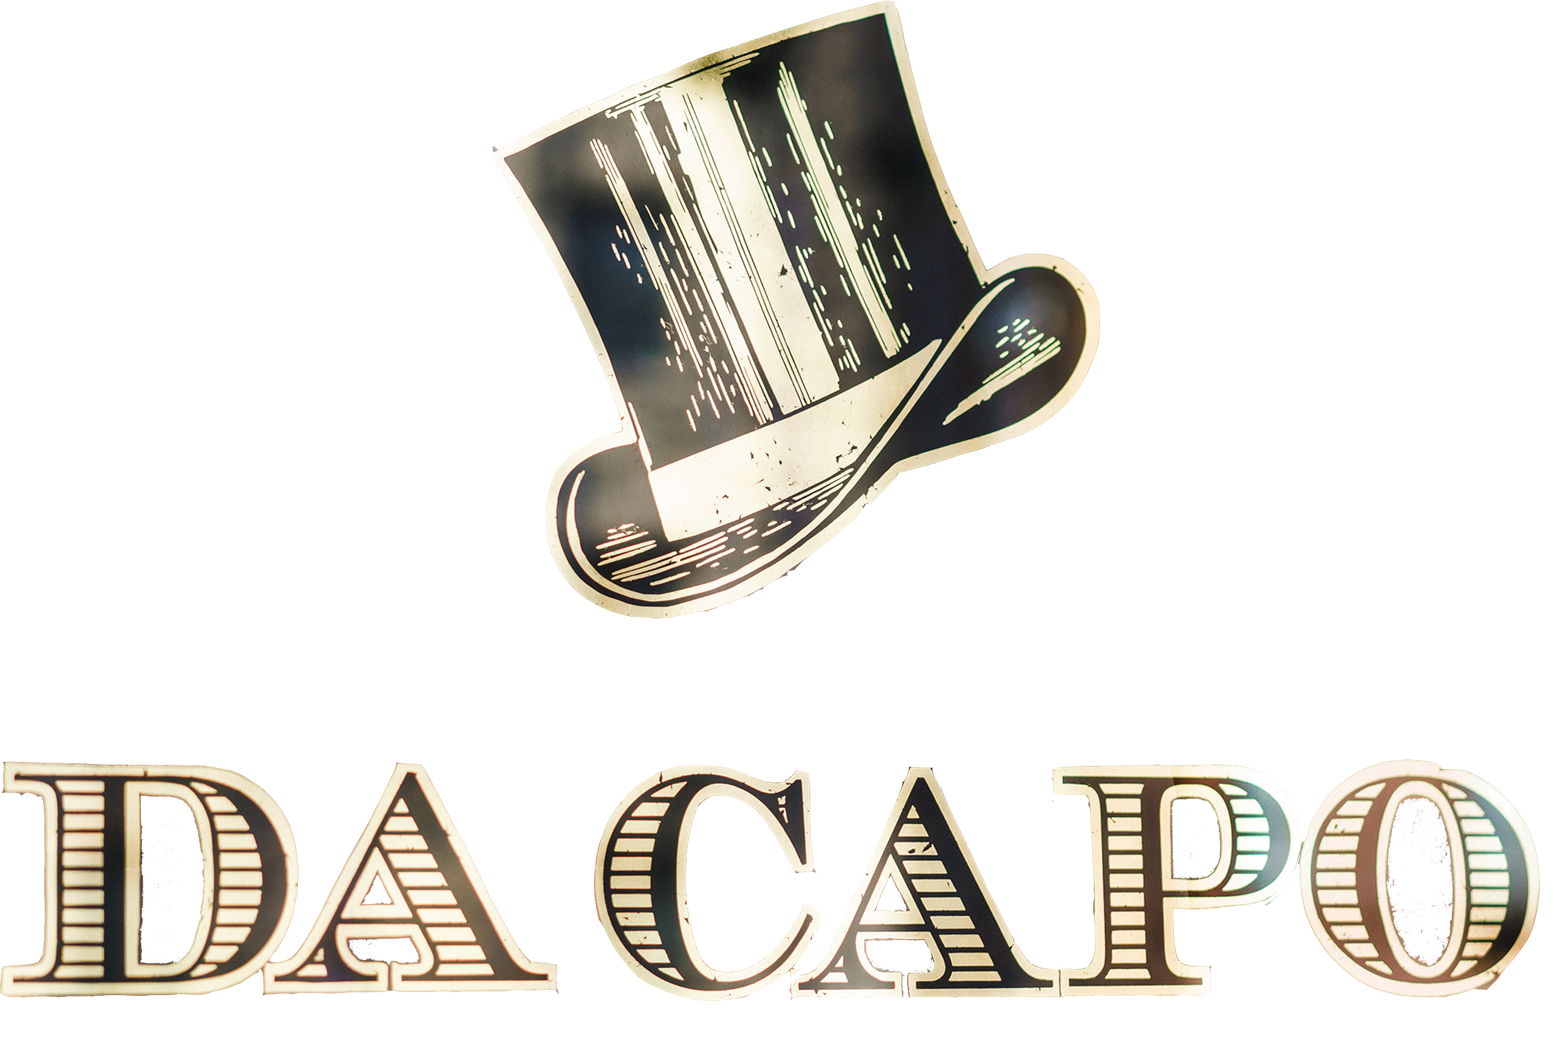 reduced size da capo logo front window.png